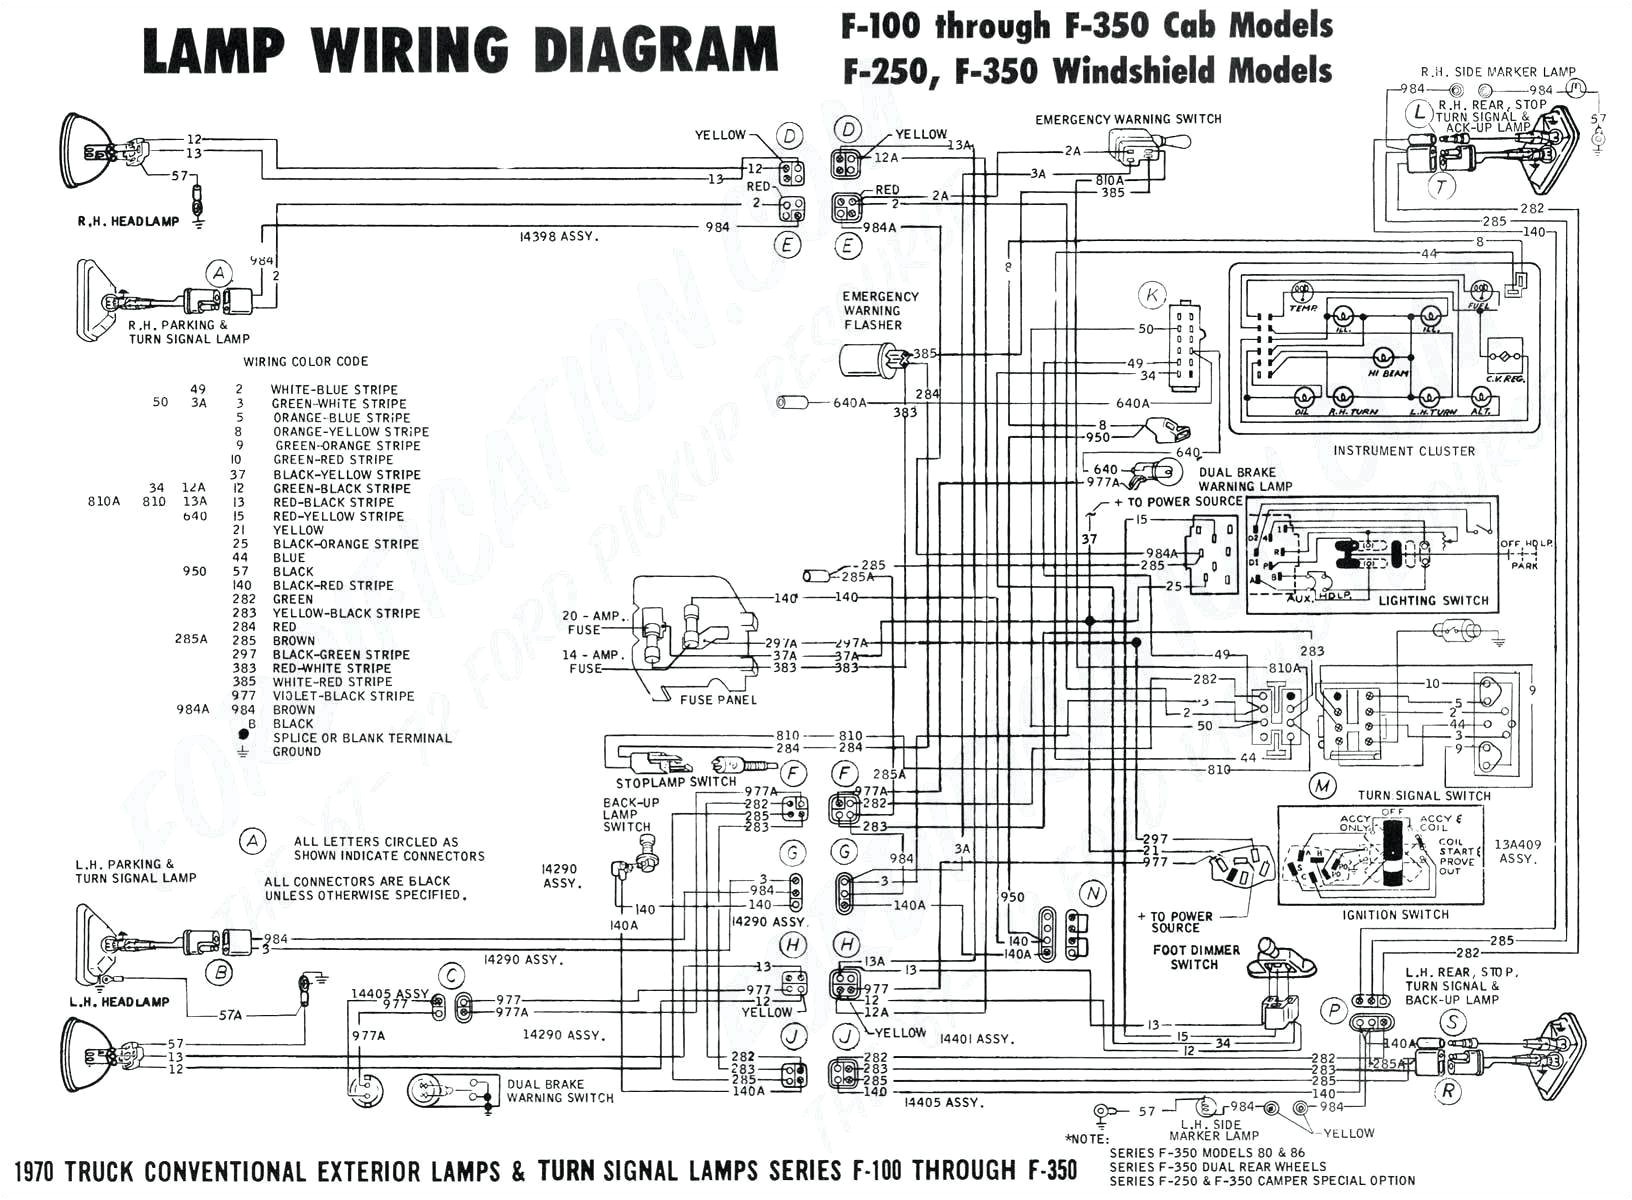 98 Chevy S10 Radio Wiring Diagram Chevy Cobalt Fuel Pump Wiring Harness Wiring Diagram Page